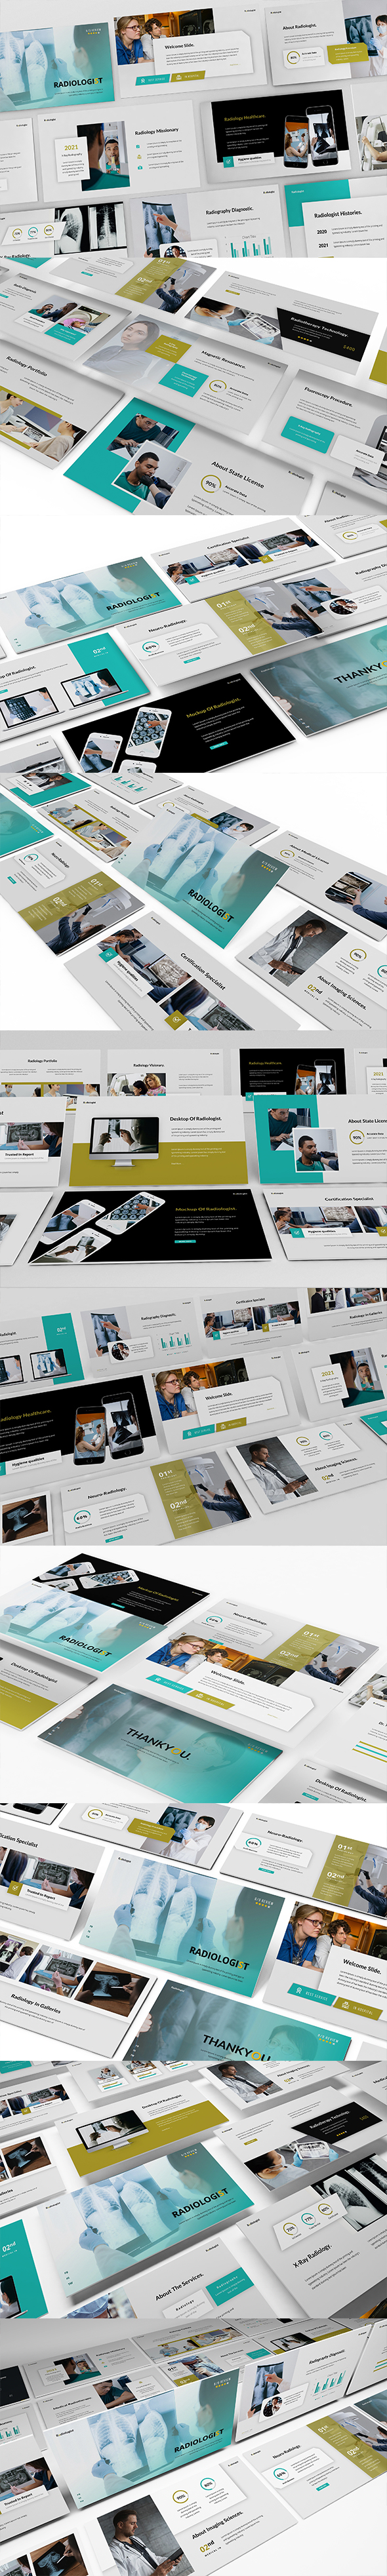 Radiology Diagnostic Keynote Presentation Template